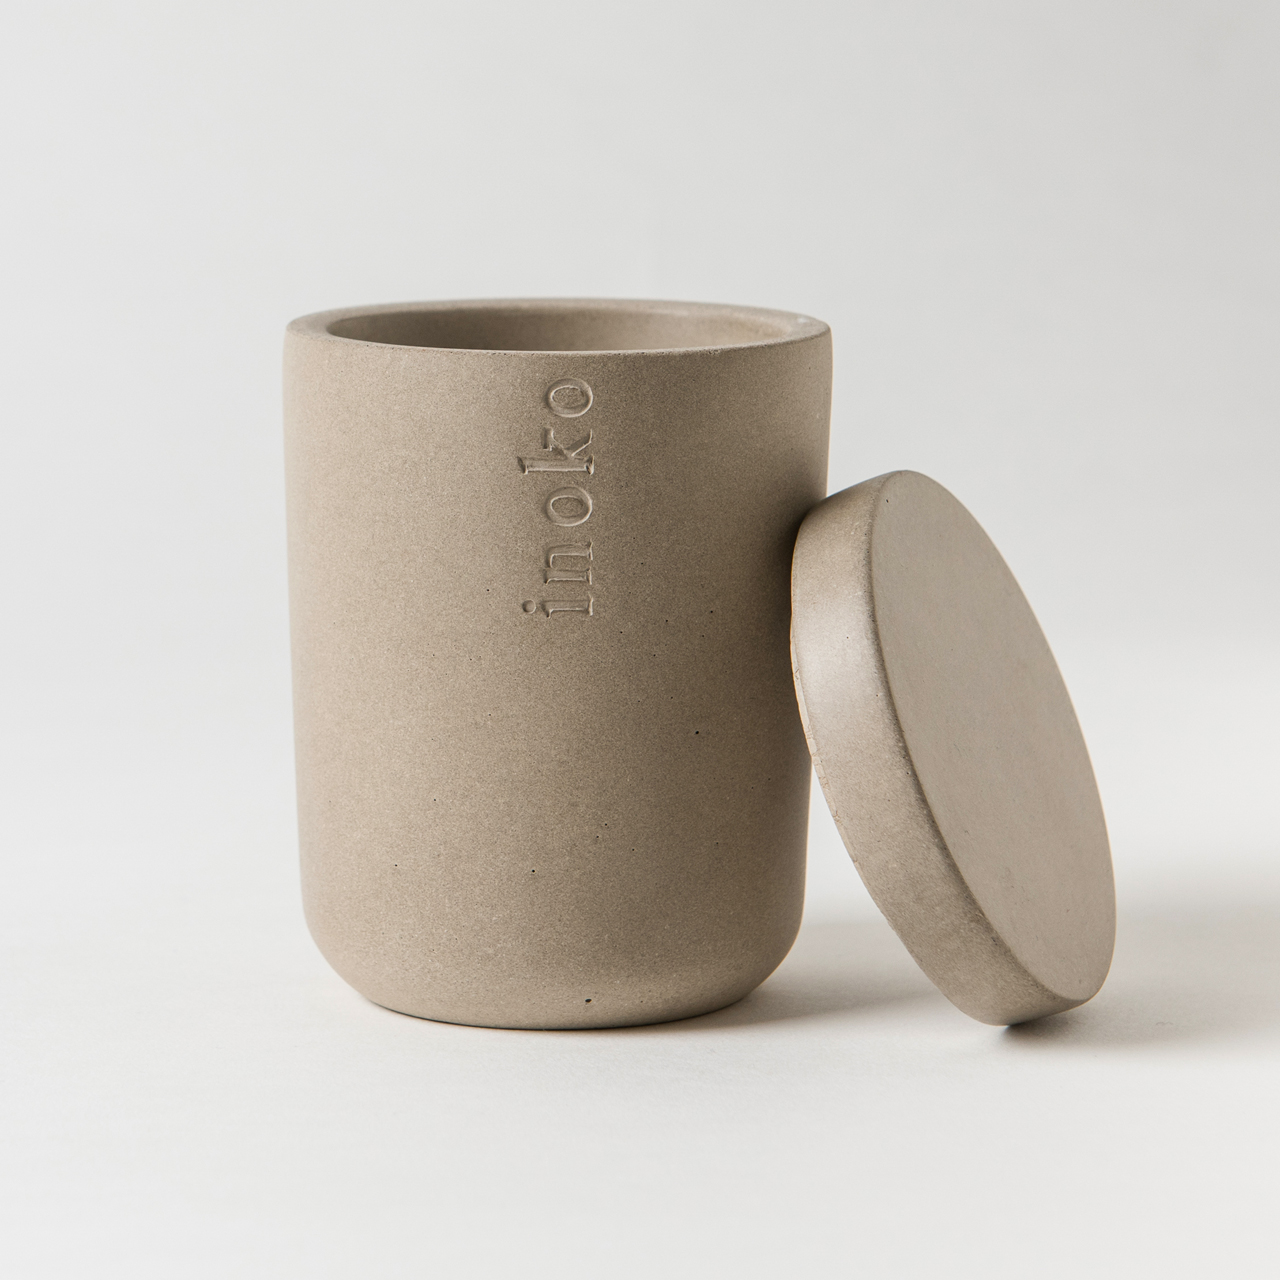 Inoko concrete vessel | The Design Gift Shop